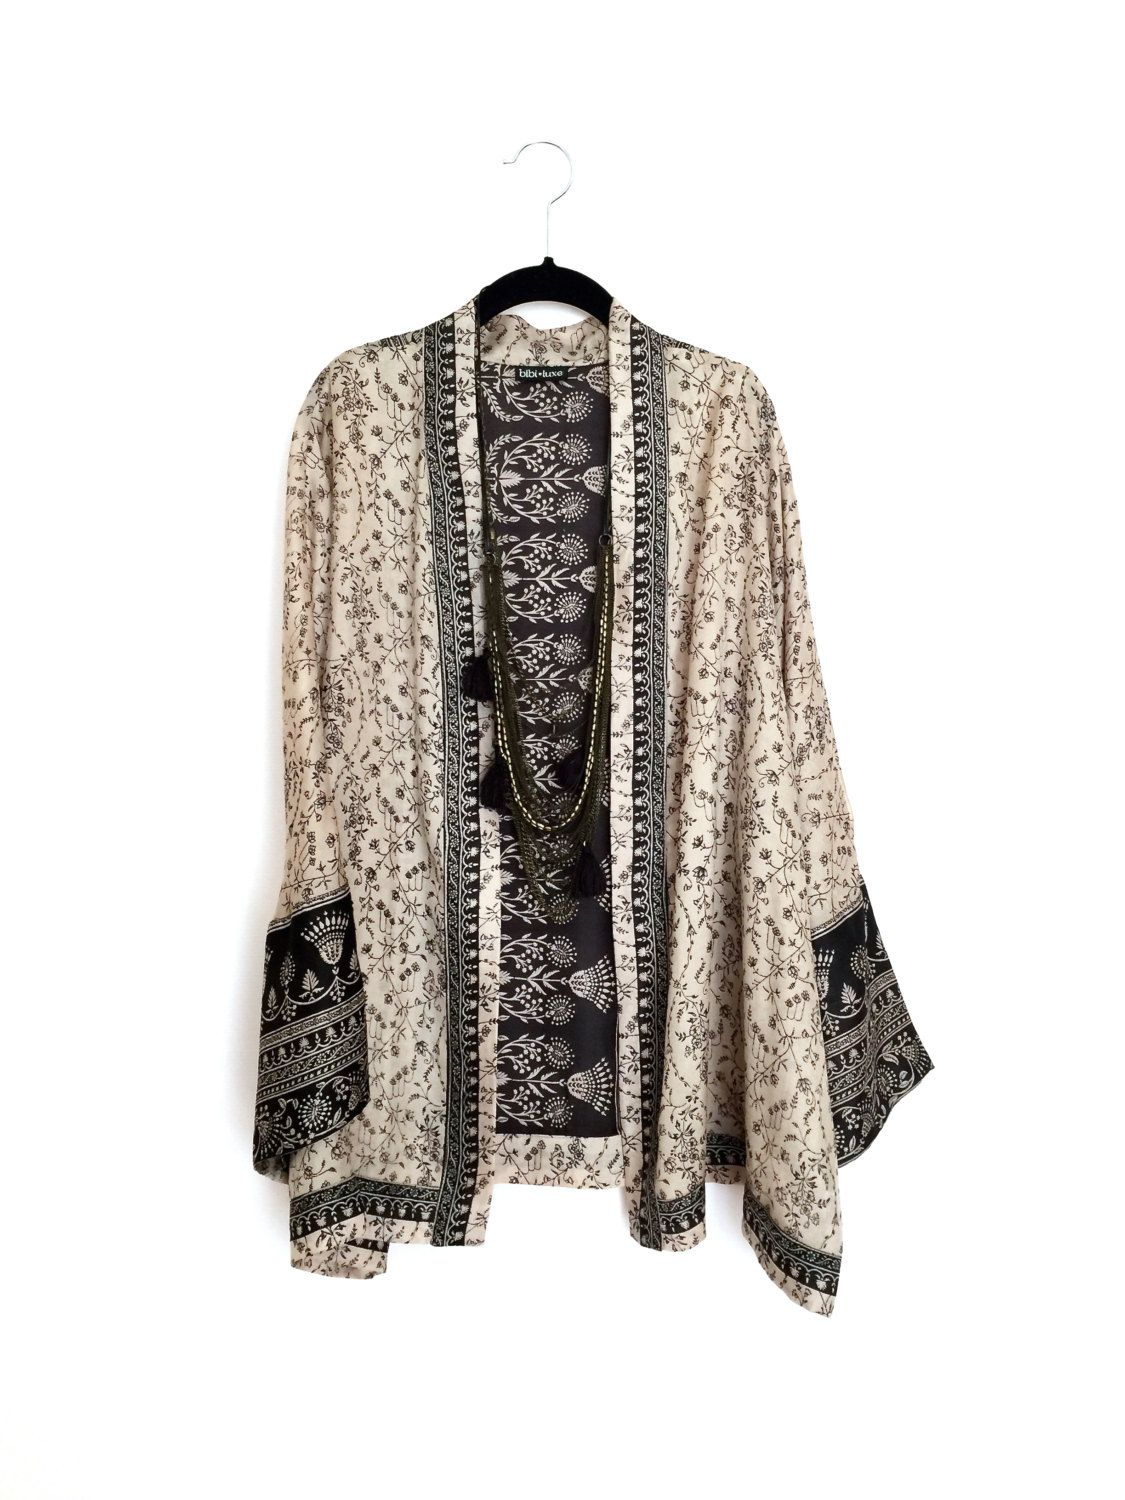 87dd00c02da Silk Kimono jacket black and beige paisley indian by Bibiluxe ...